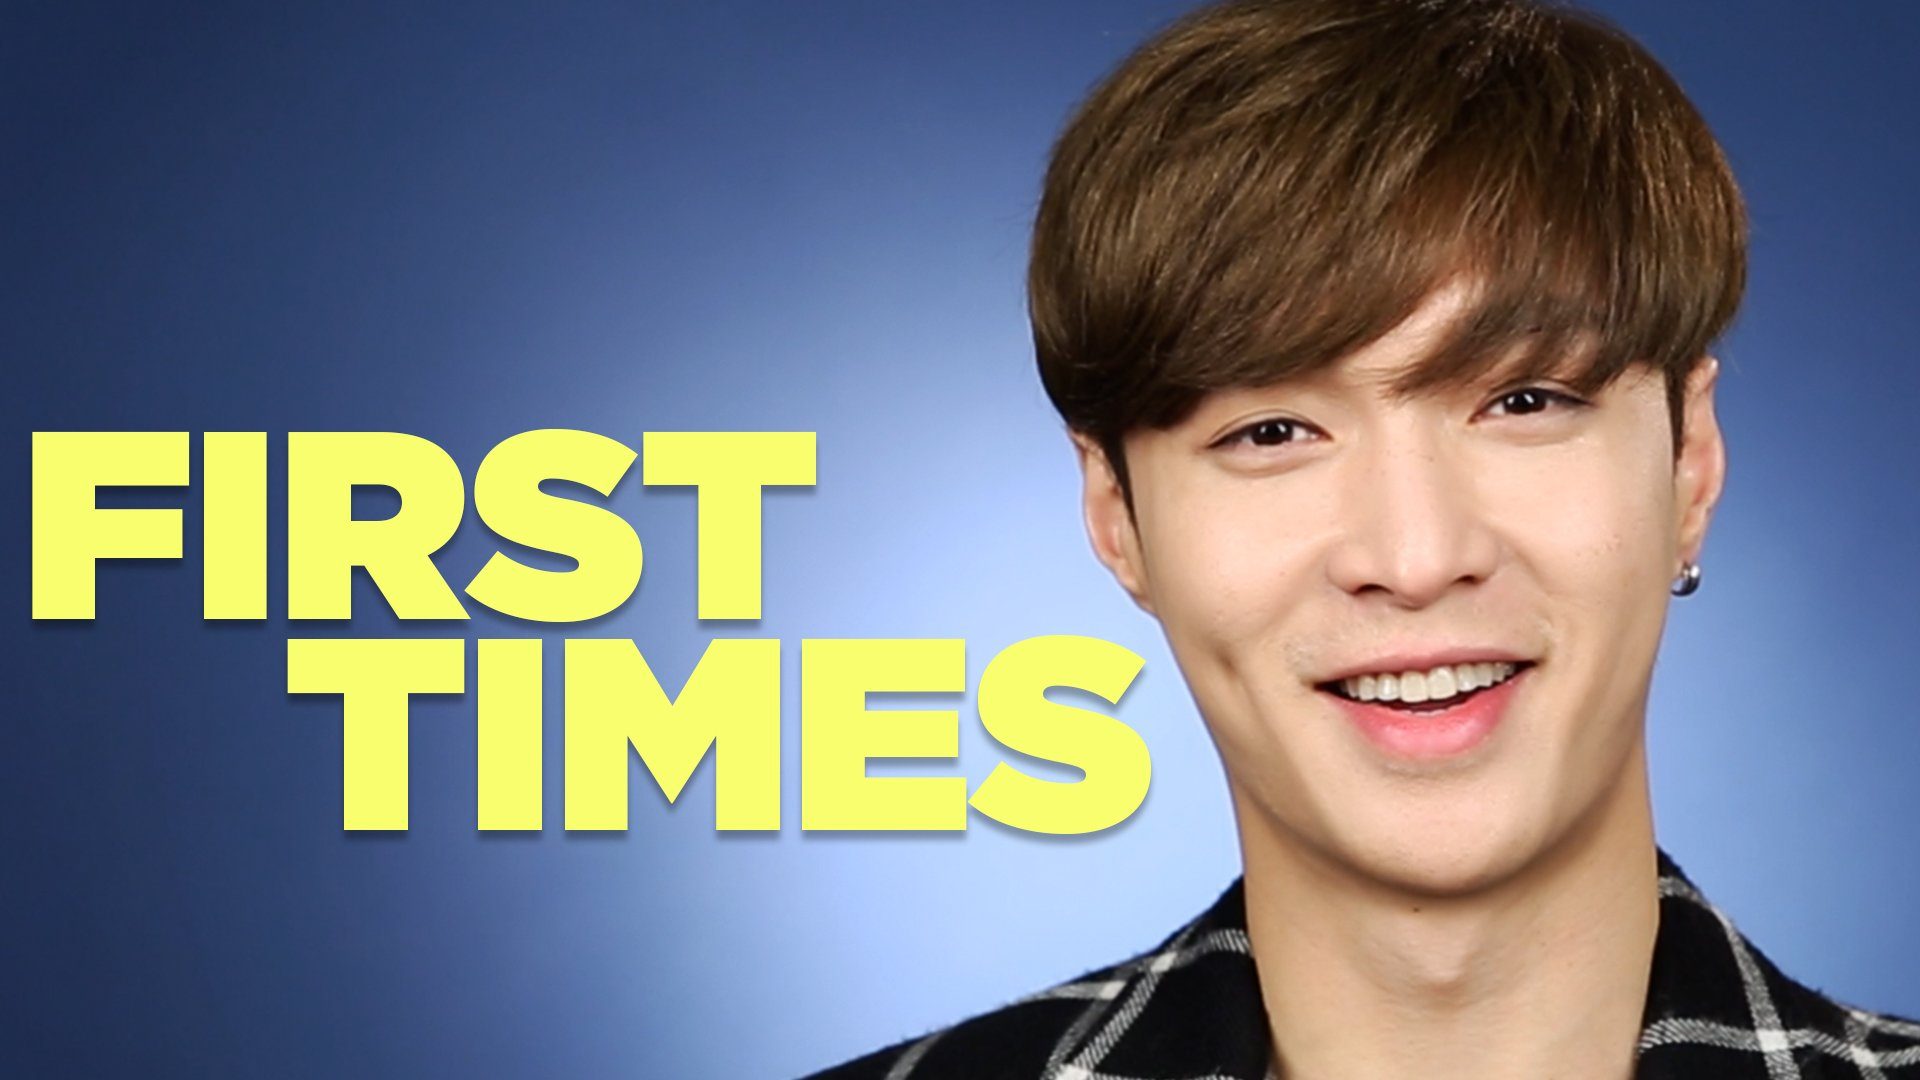 .@LAY_zhang_ of @weareoneEXO stopped by to tell us about his first times. https://t.co/cZQ9XwRhf6